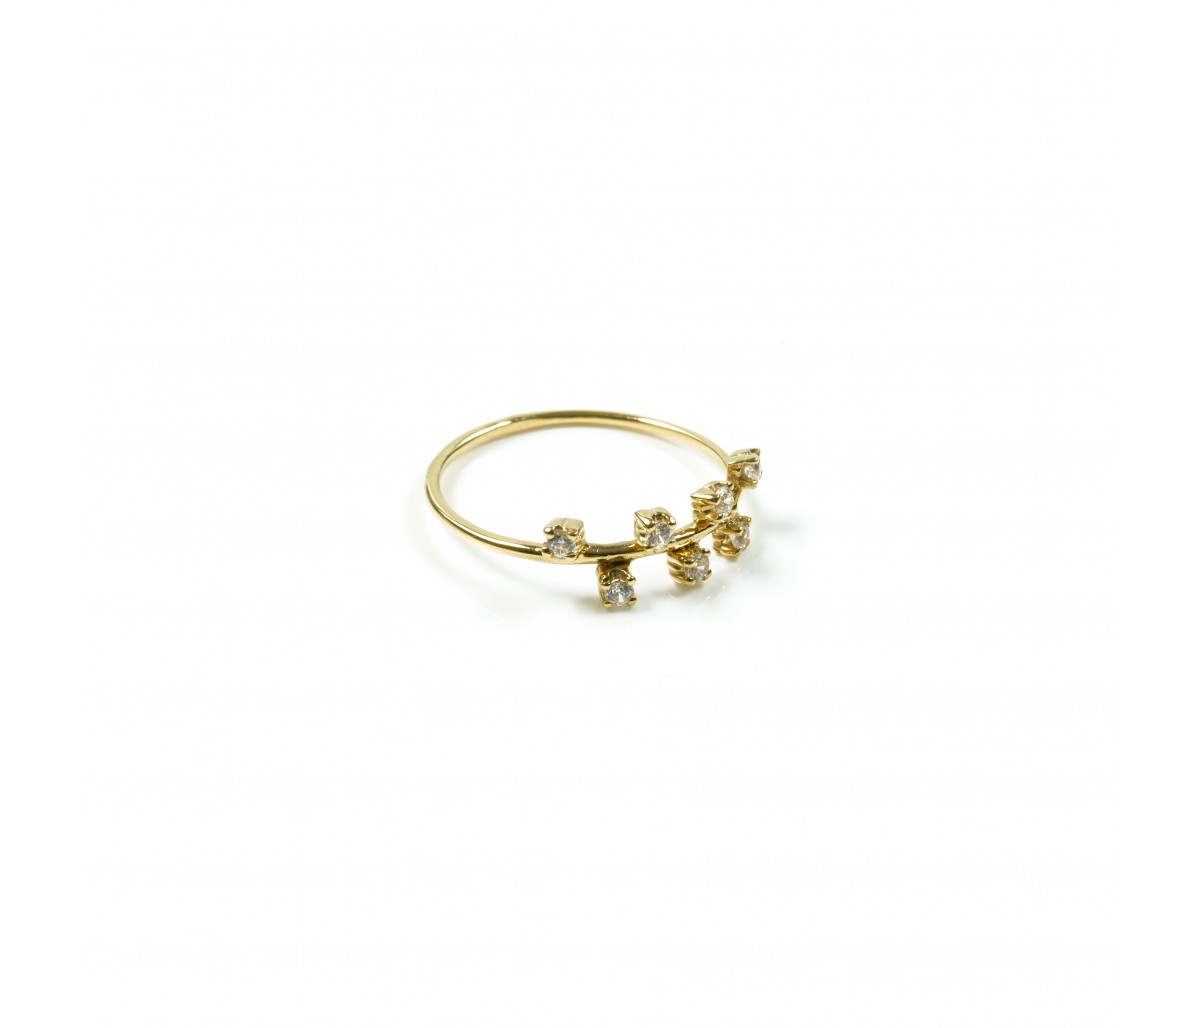 Harry 19k gold ring